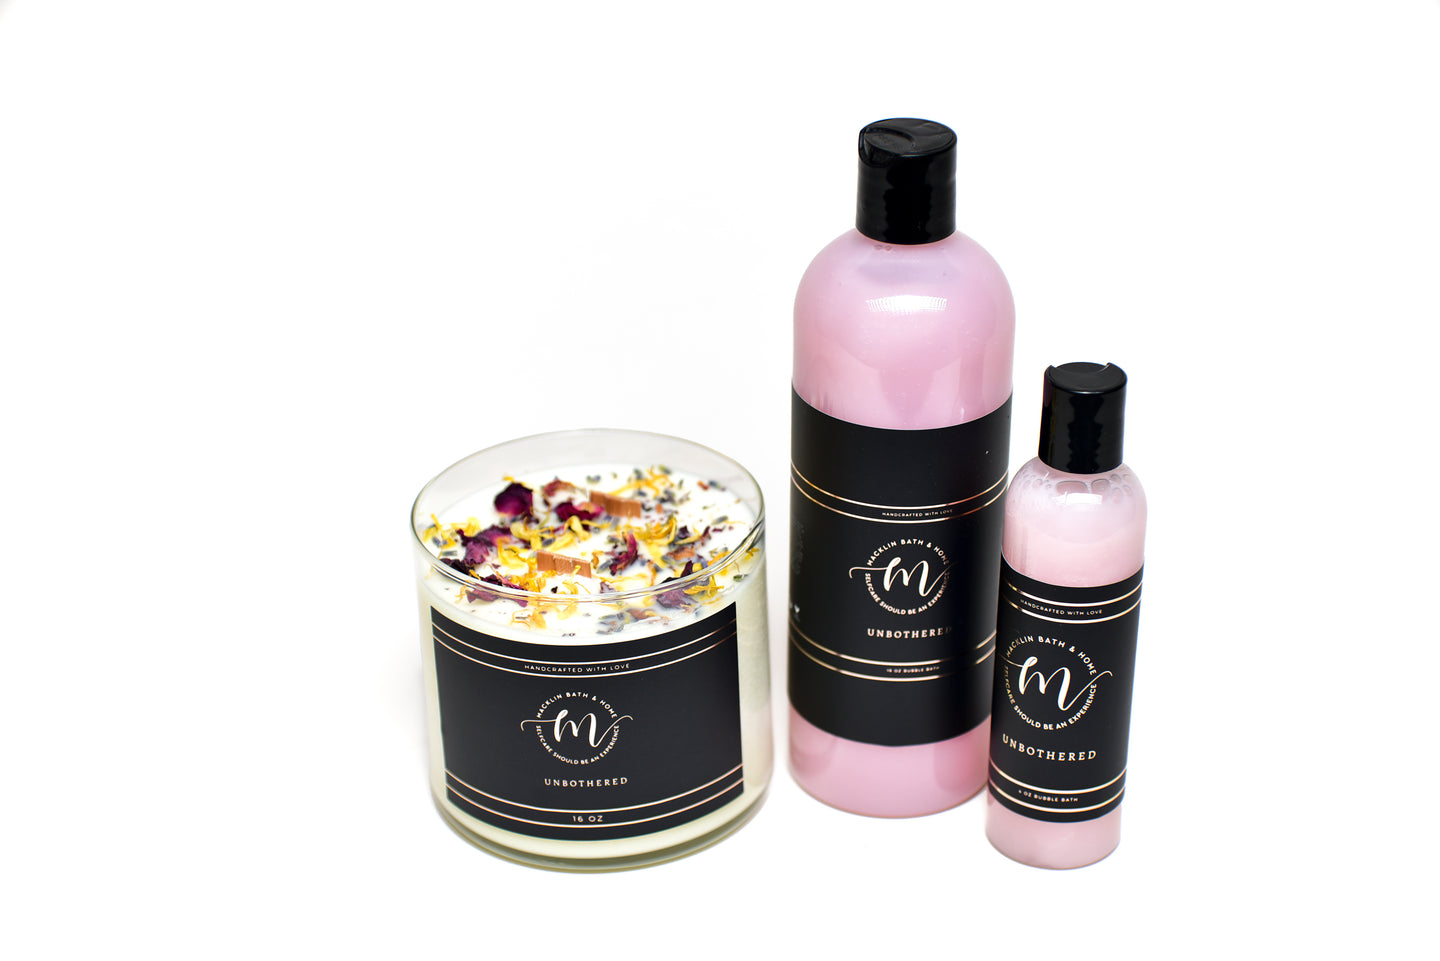 Healing Energy Collection Candle & Bubble Bath - Unbothered